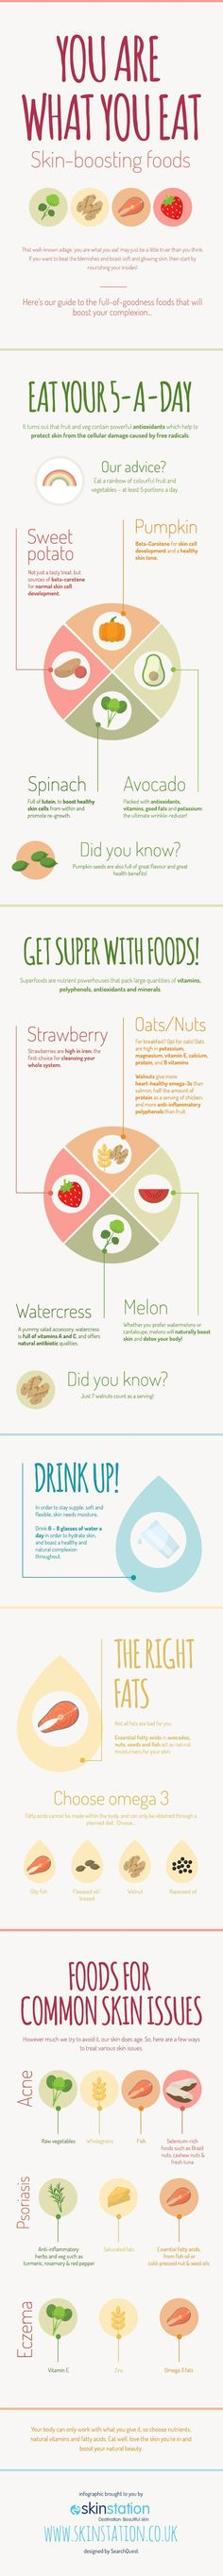 You Are What You #Eat - Do you fancy an infographic?  There are a lot of them online, but if you want your own please visit www.linfografico....  Online girano molte infografiche, se ne vuoi realizzare una tutta tua visita www.linfografico....